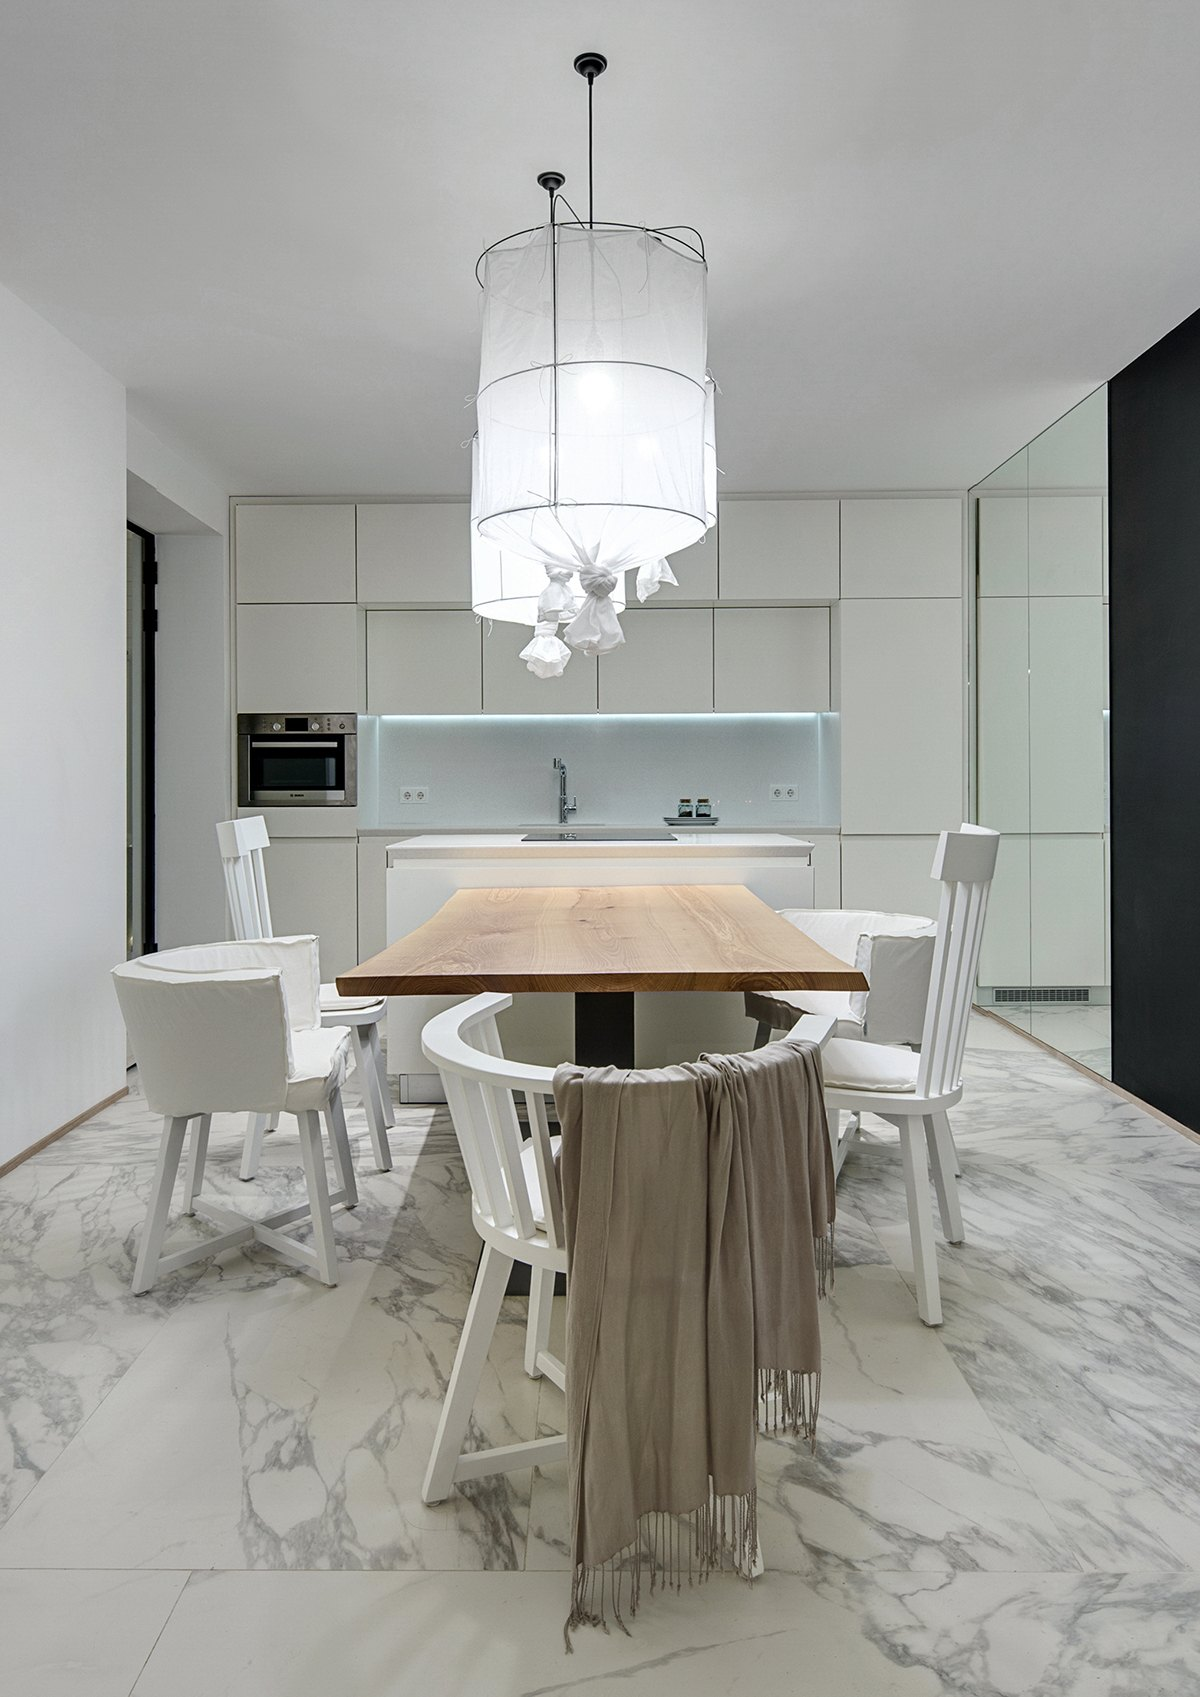 Minimalist Wood And Marble Kitchen - A bright white home with organic details